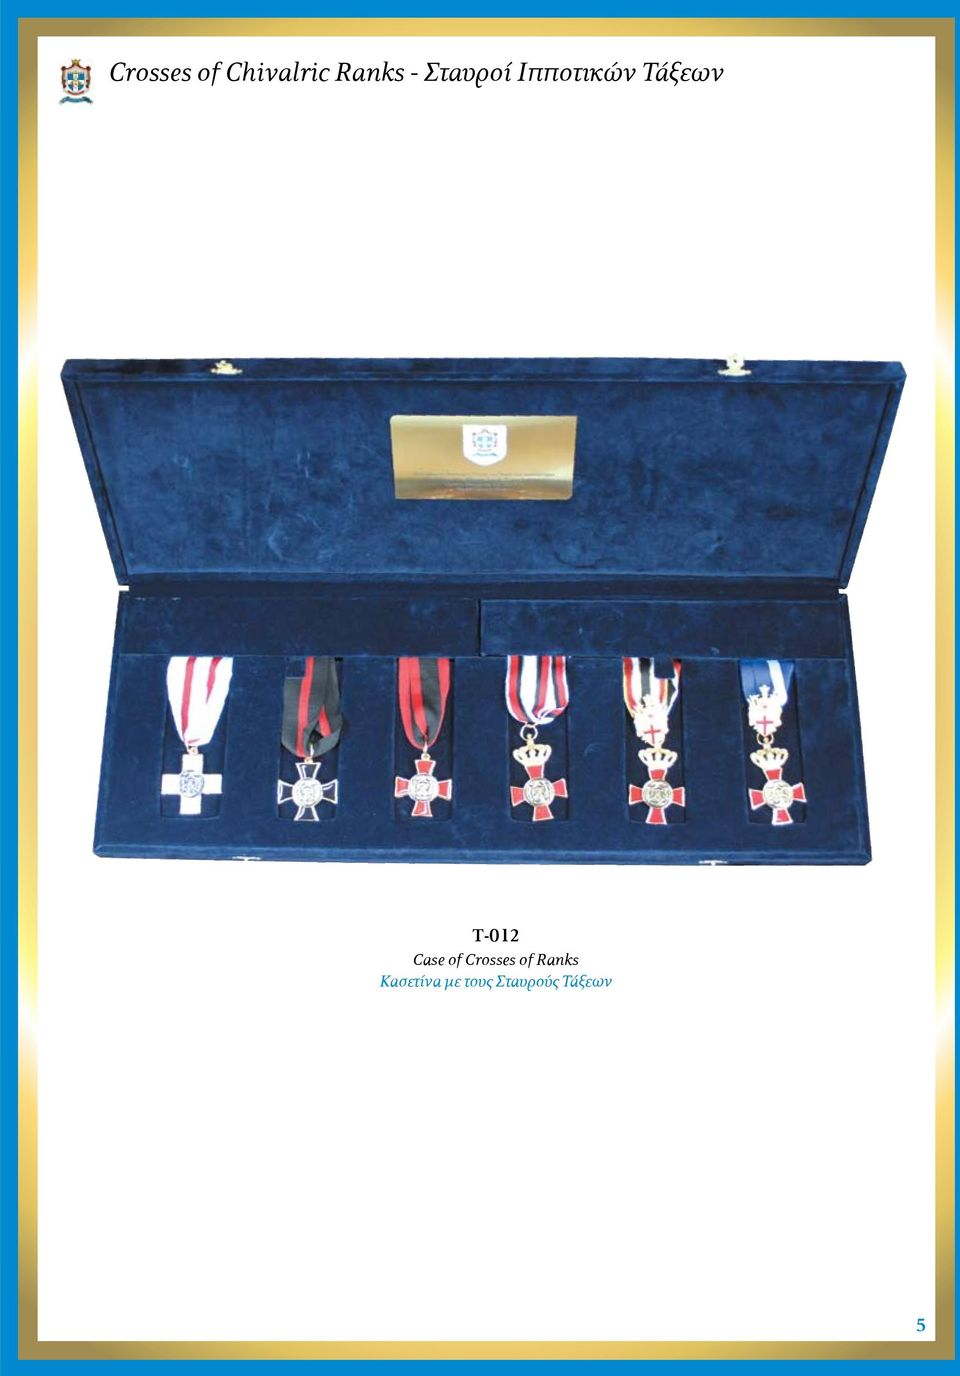 Τ-012 Case of Crosses of